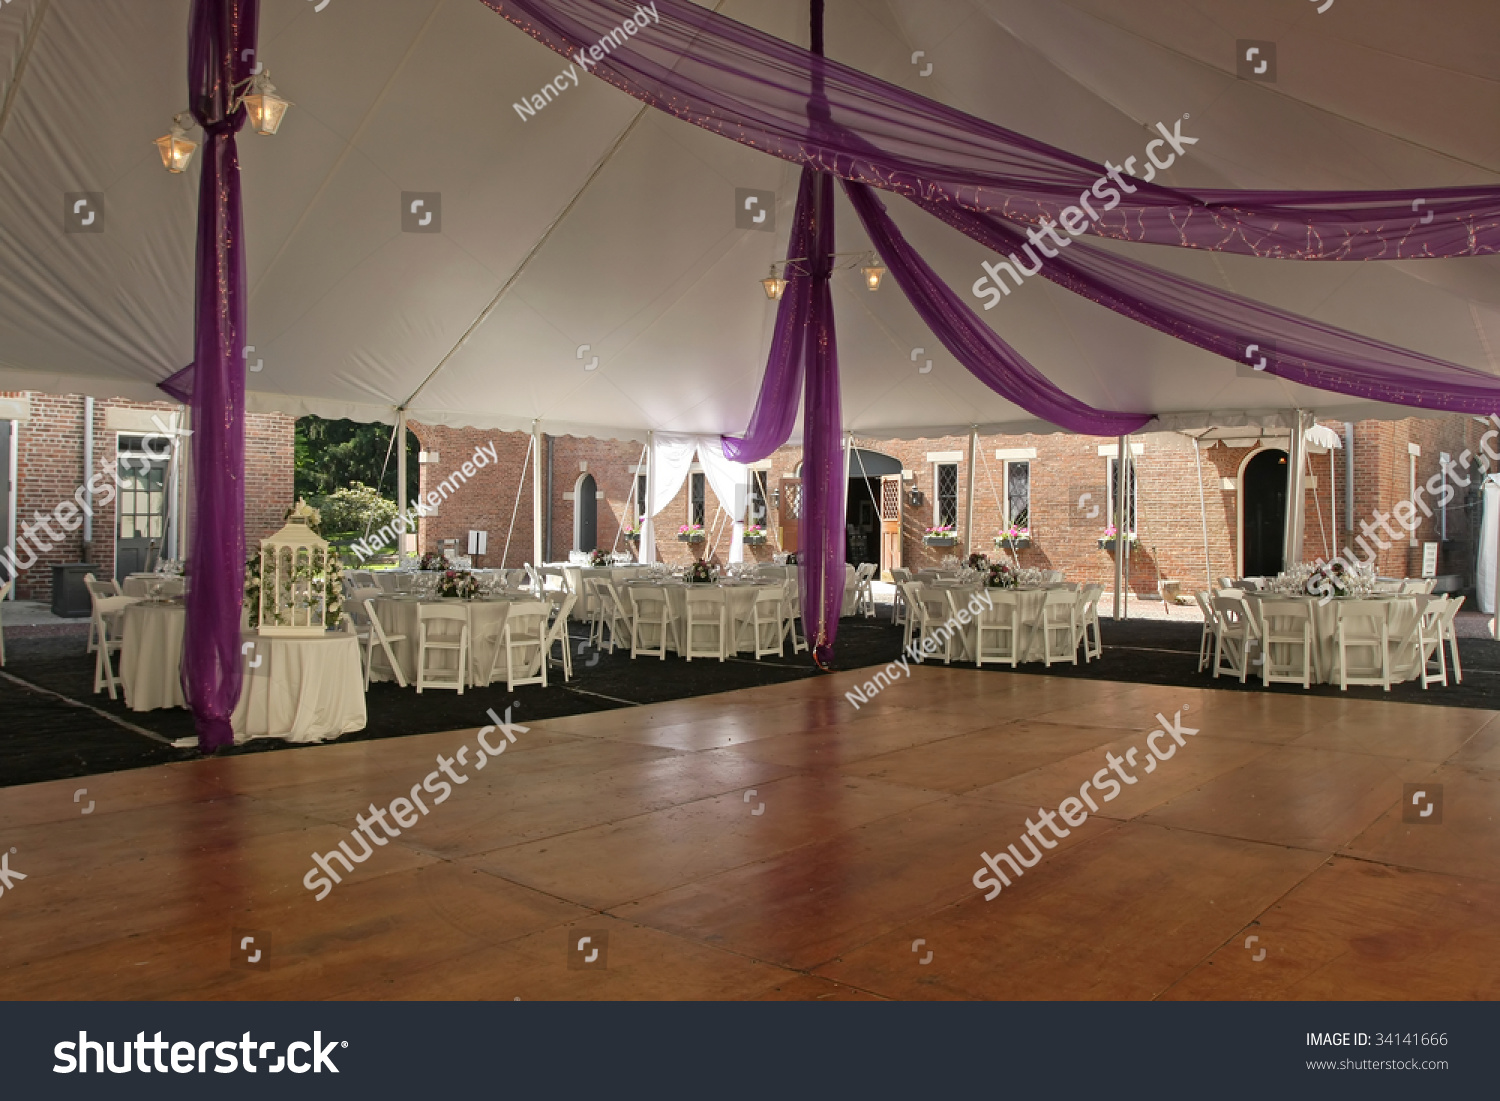 Dance Floor Under Tent Outdoor Wedding Stock Photo 34141666 ...